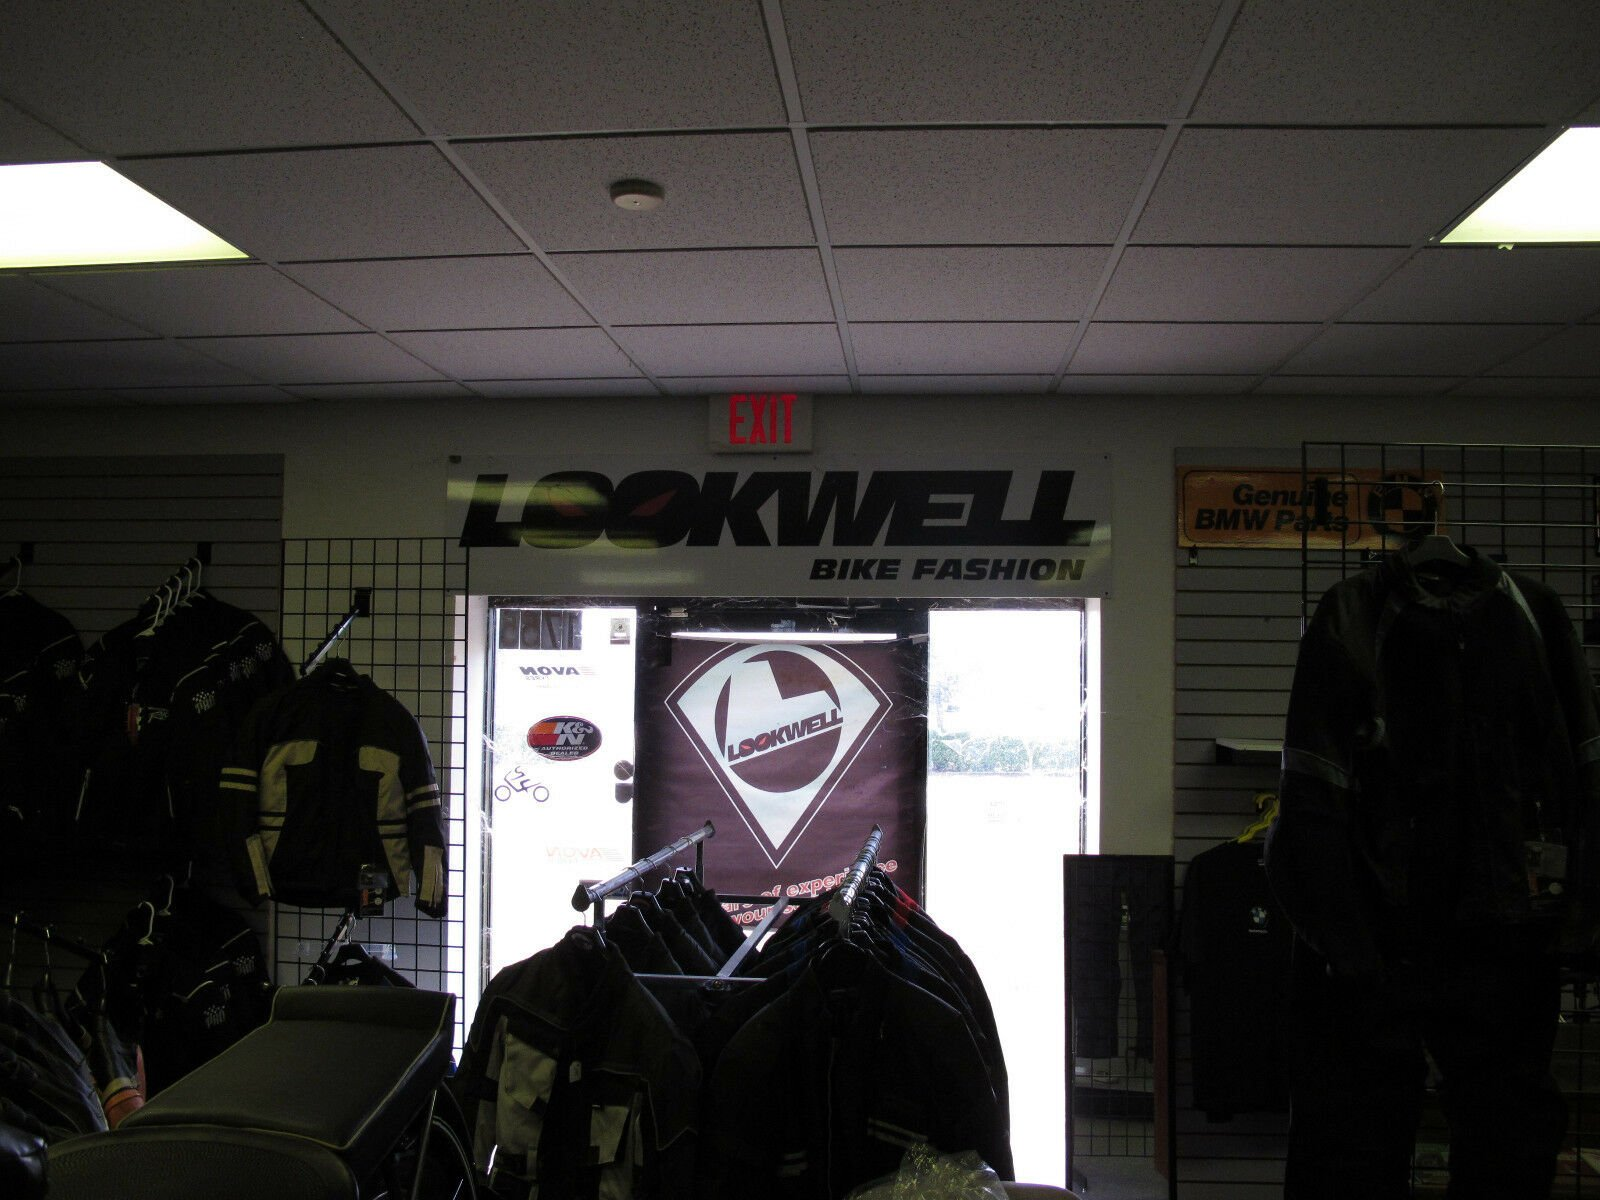 Lookwell Bike Fashion, Riding Gear, business for sale